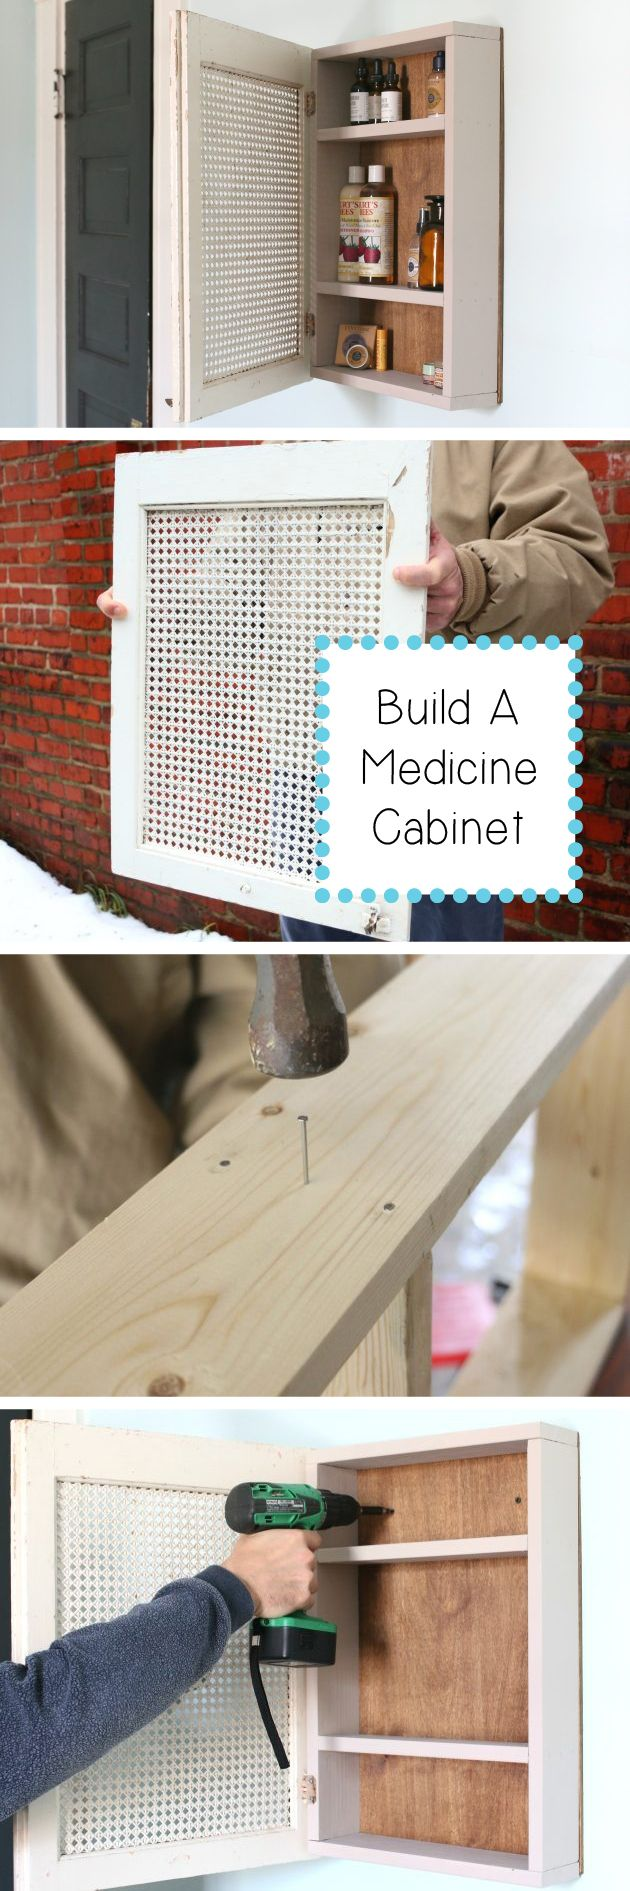 Upcycle and refashion an antique cabinet door into a useful medicine cabinet perfect for adding tons of character to your home. Easier to make than you'd think, and a great unique piece for your home! http://www.ehow.com/how_4486529_build-medicine-cabinet.html?utm_source=pinterest.com&utm_medium=referral&utm_content=inline&utm_campaign=fanpage